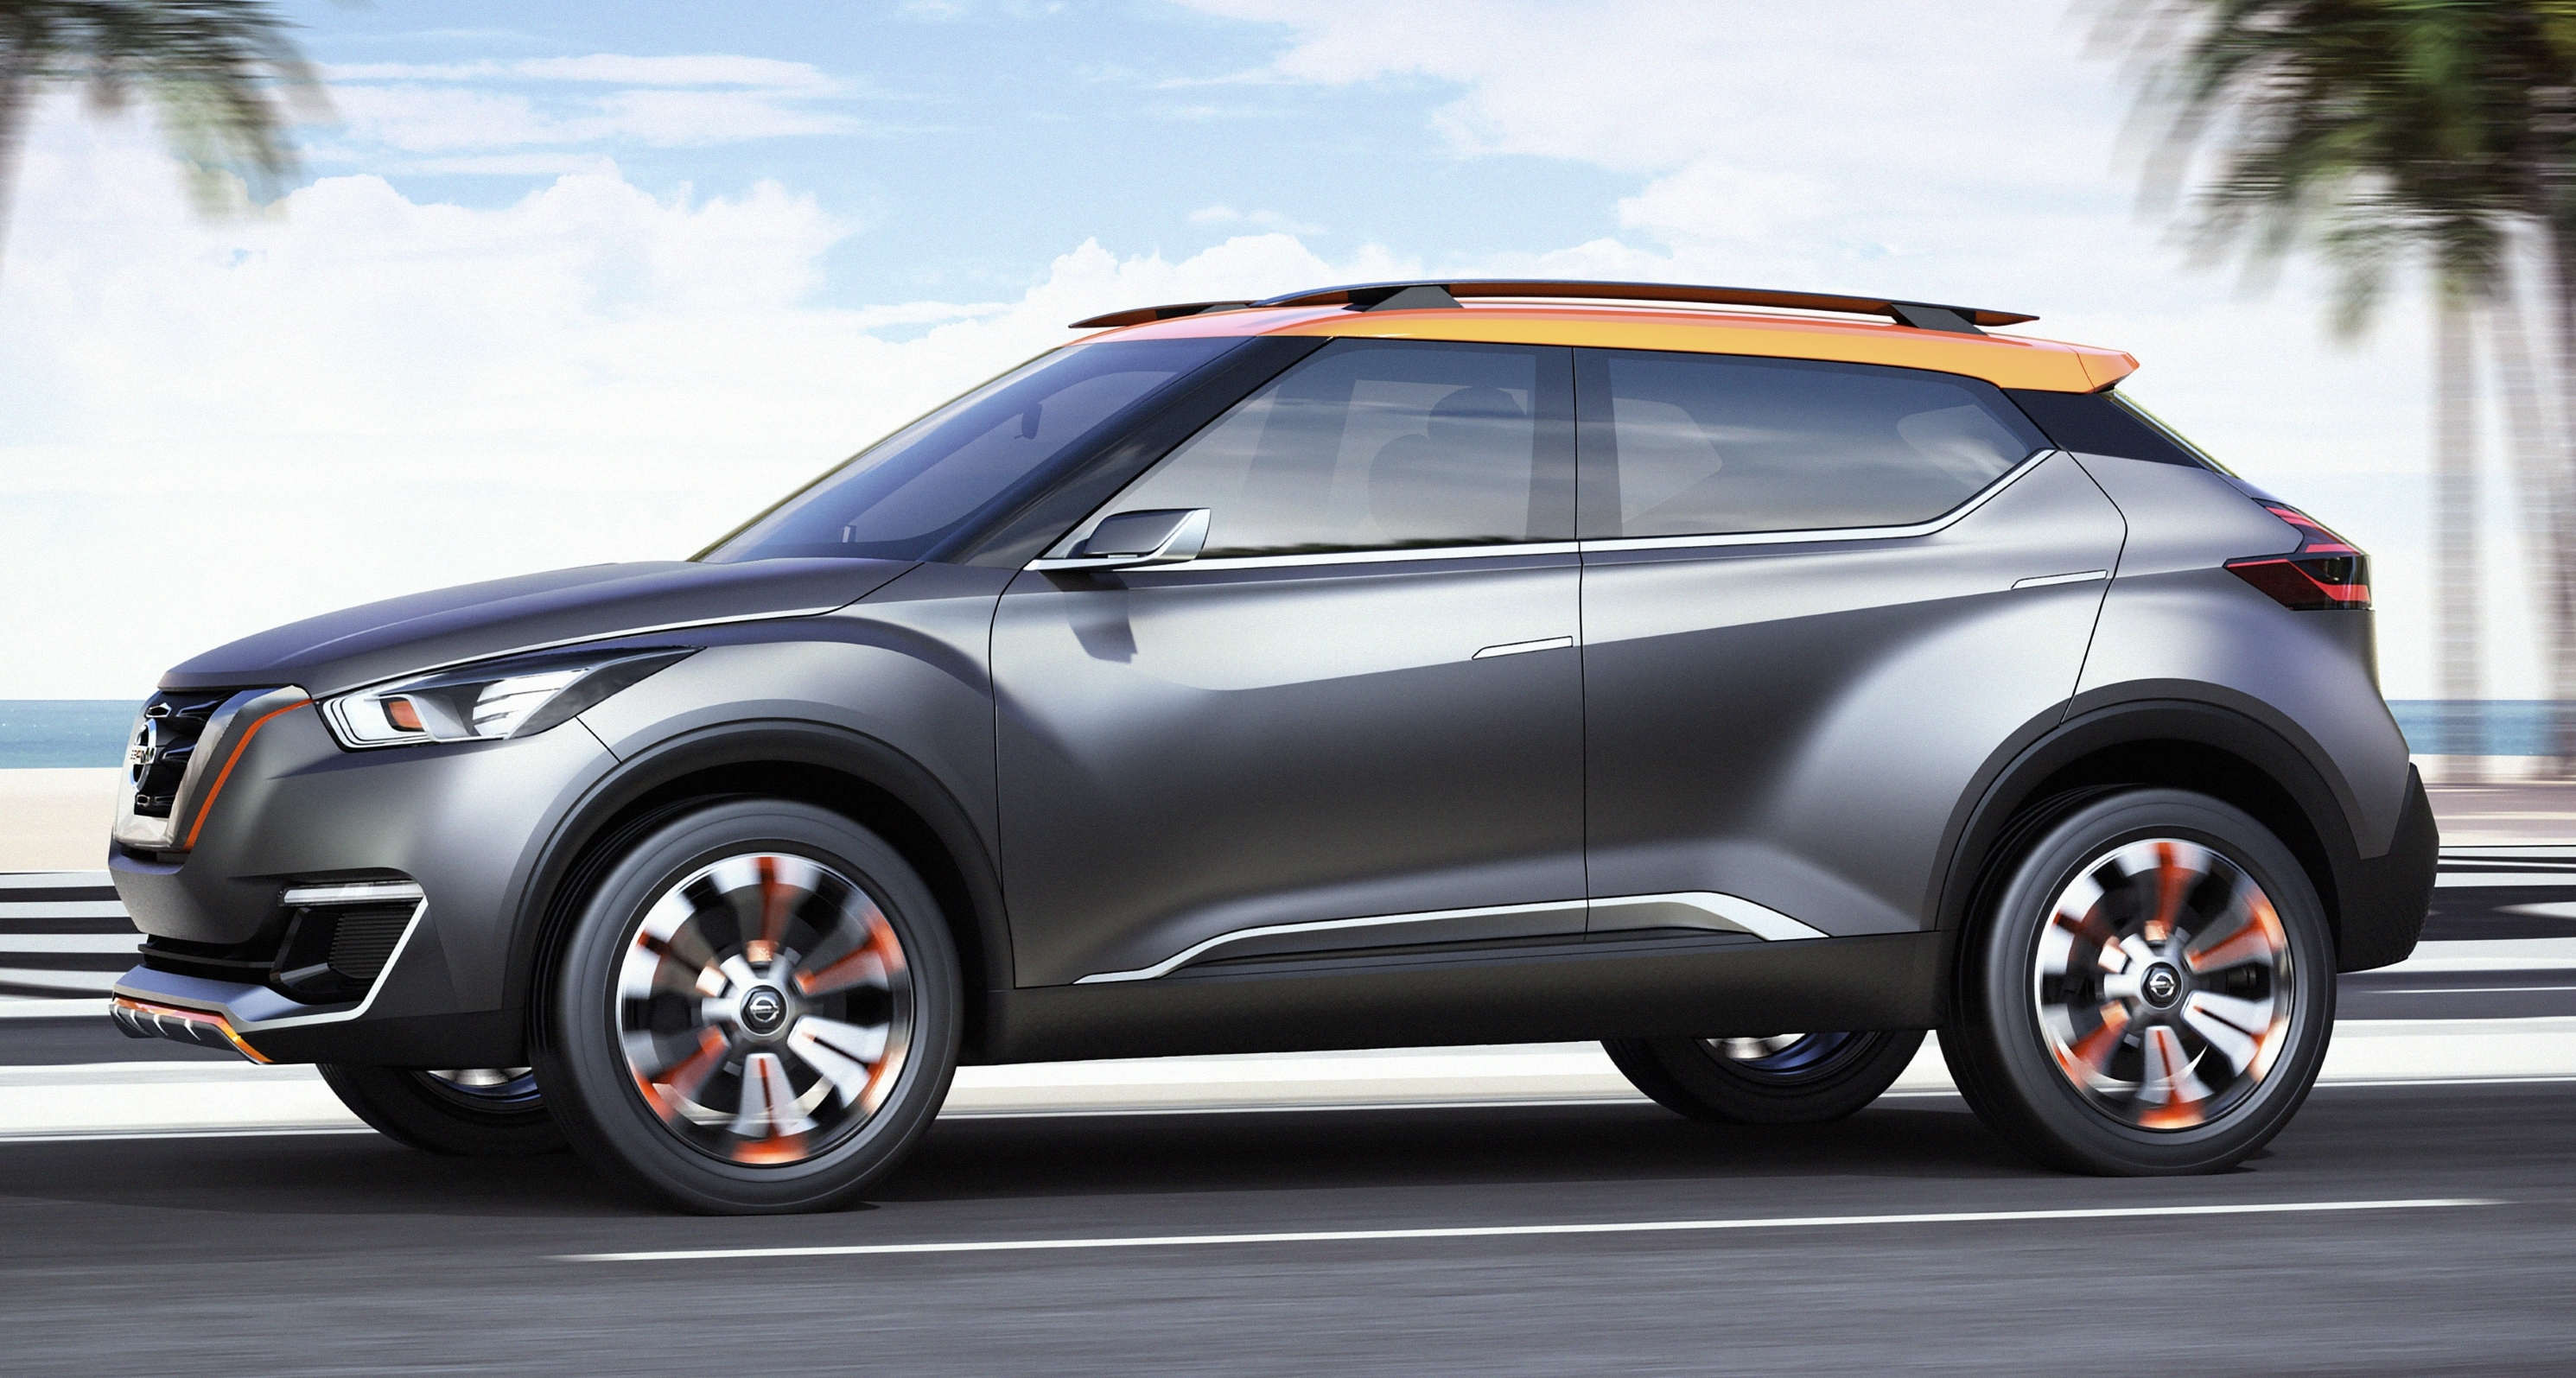 Nissan Kicks – new global crossover to debut this year Image 424604